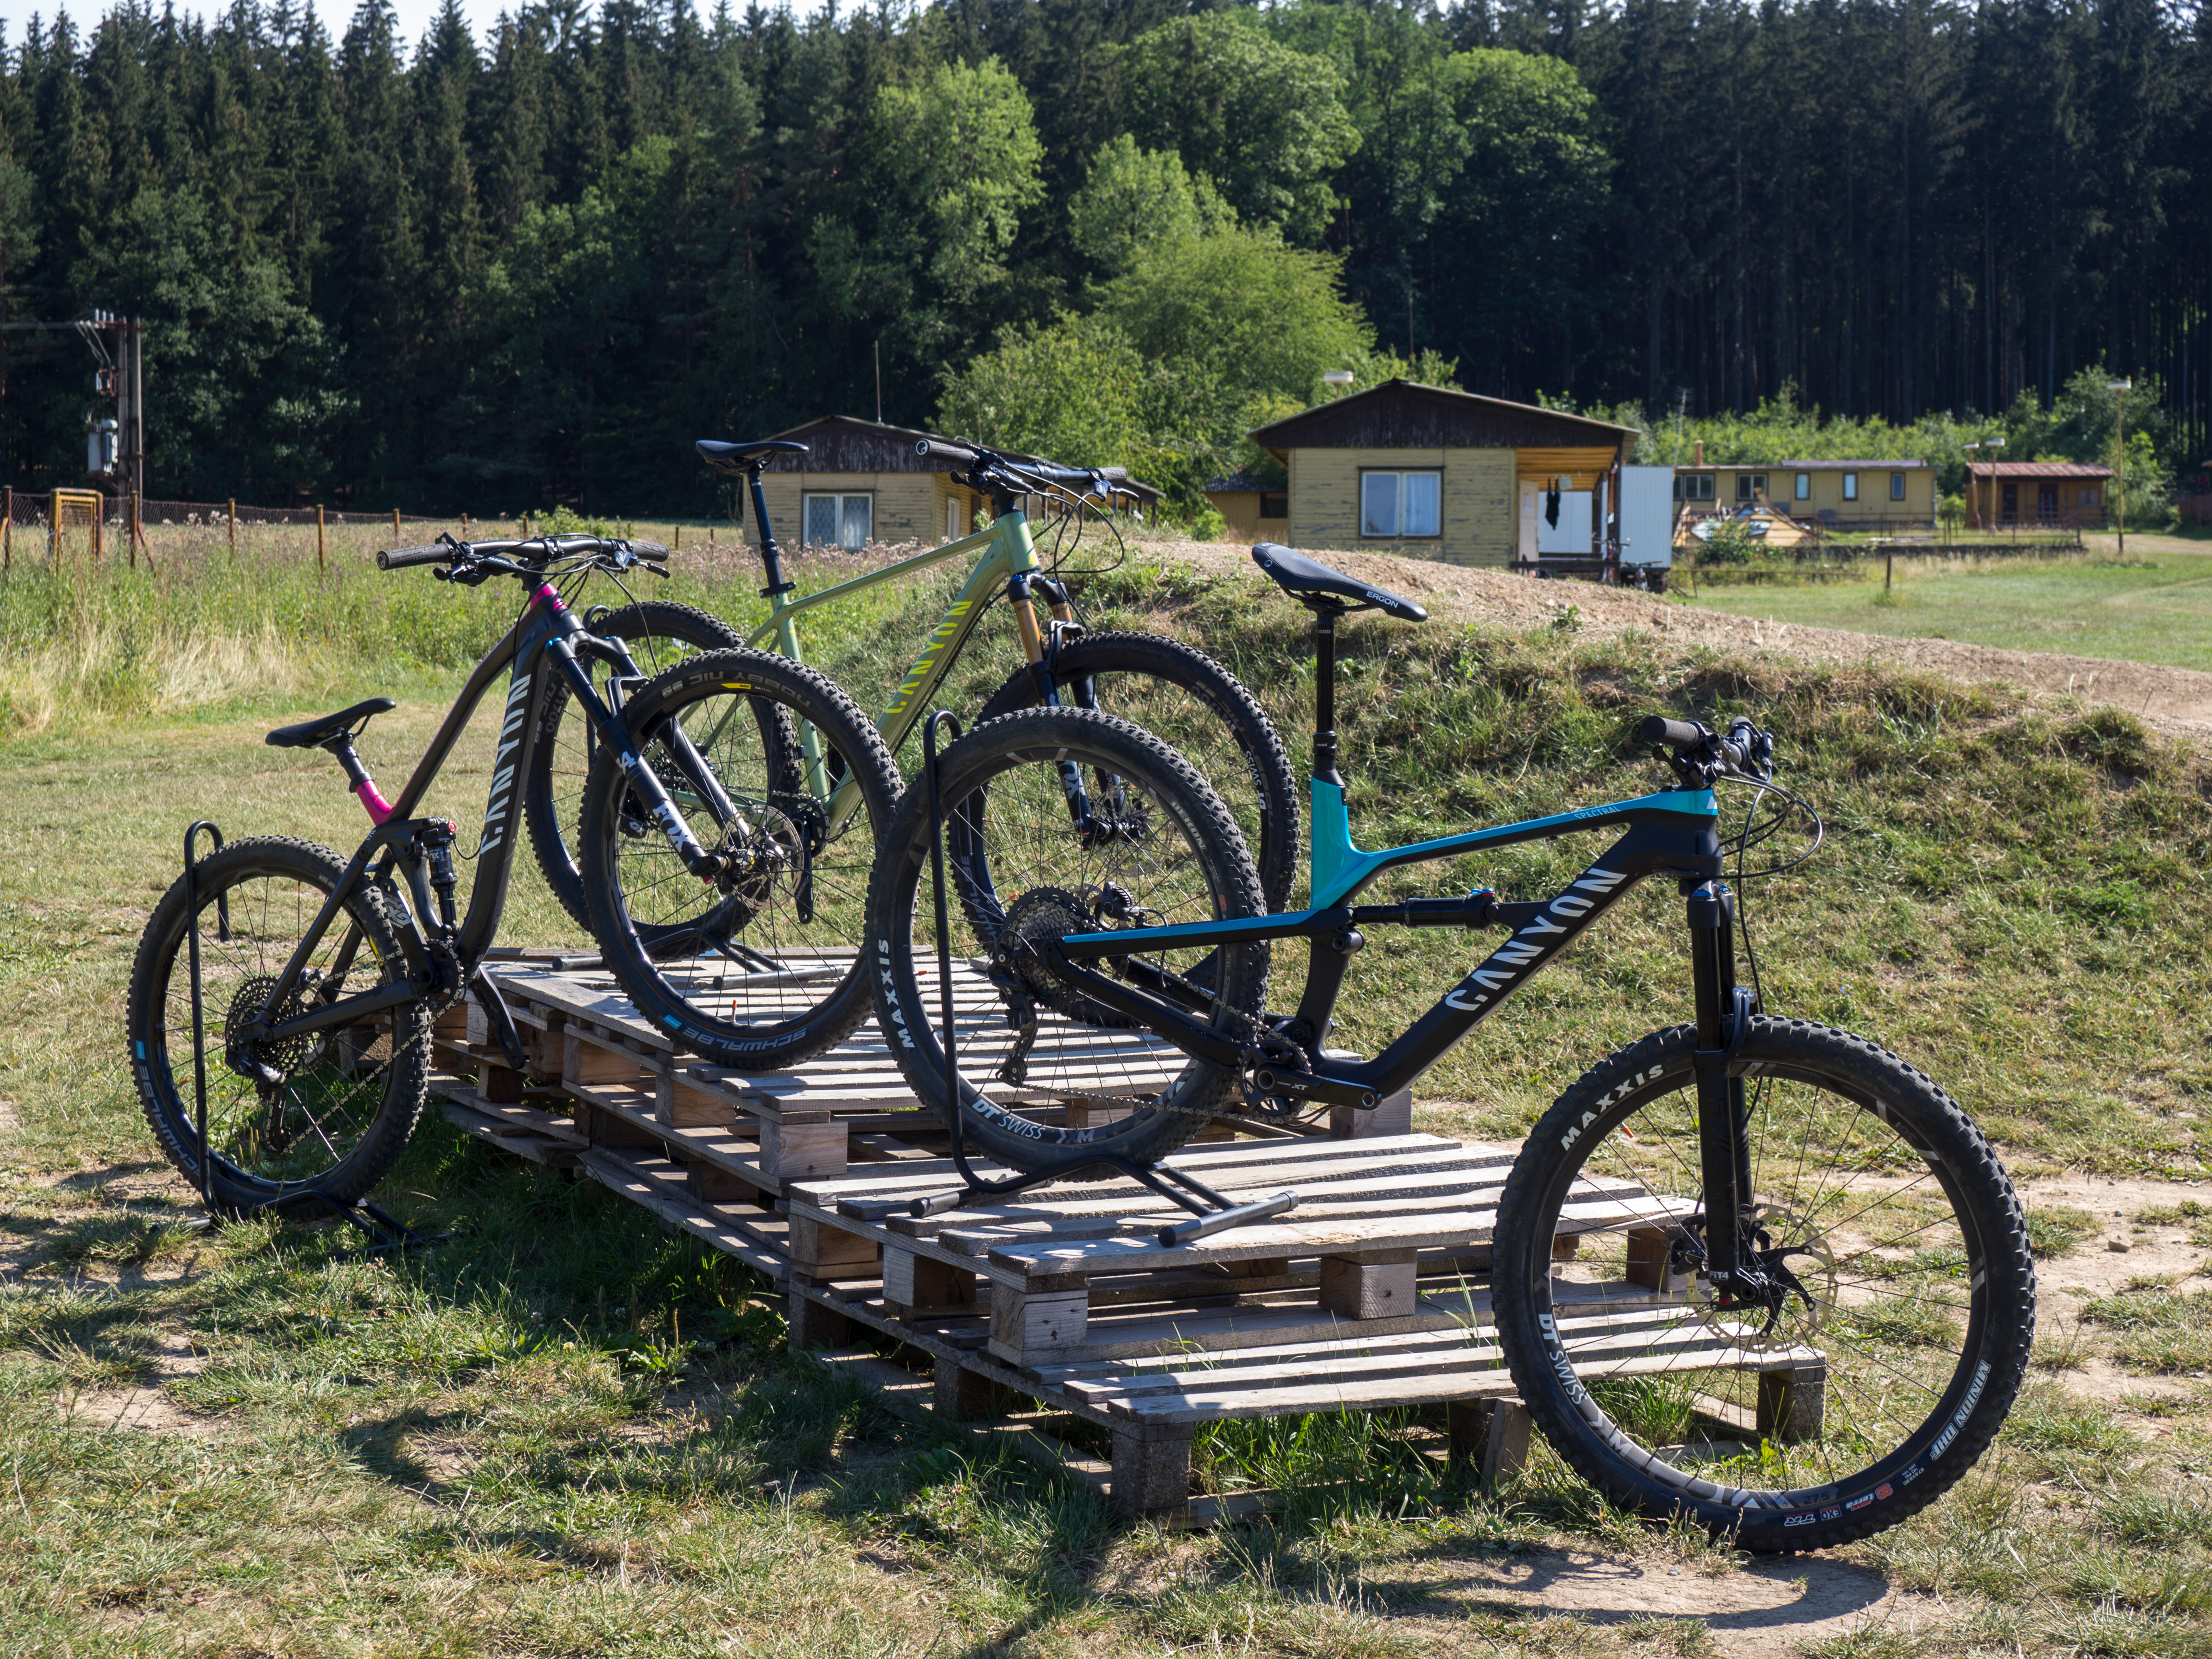 WE ARE LAUNCHING A NEW RESERVATION SYSTEM FOR OUR BIKE RENTAL